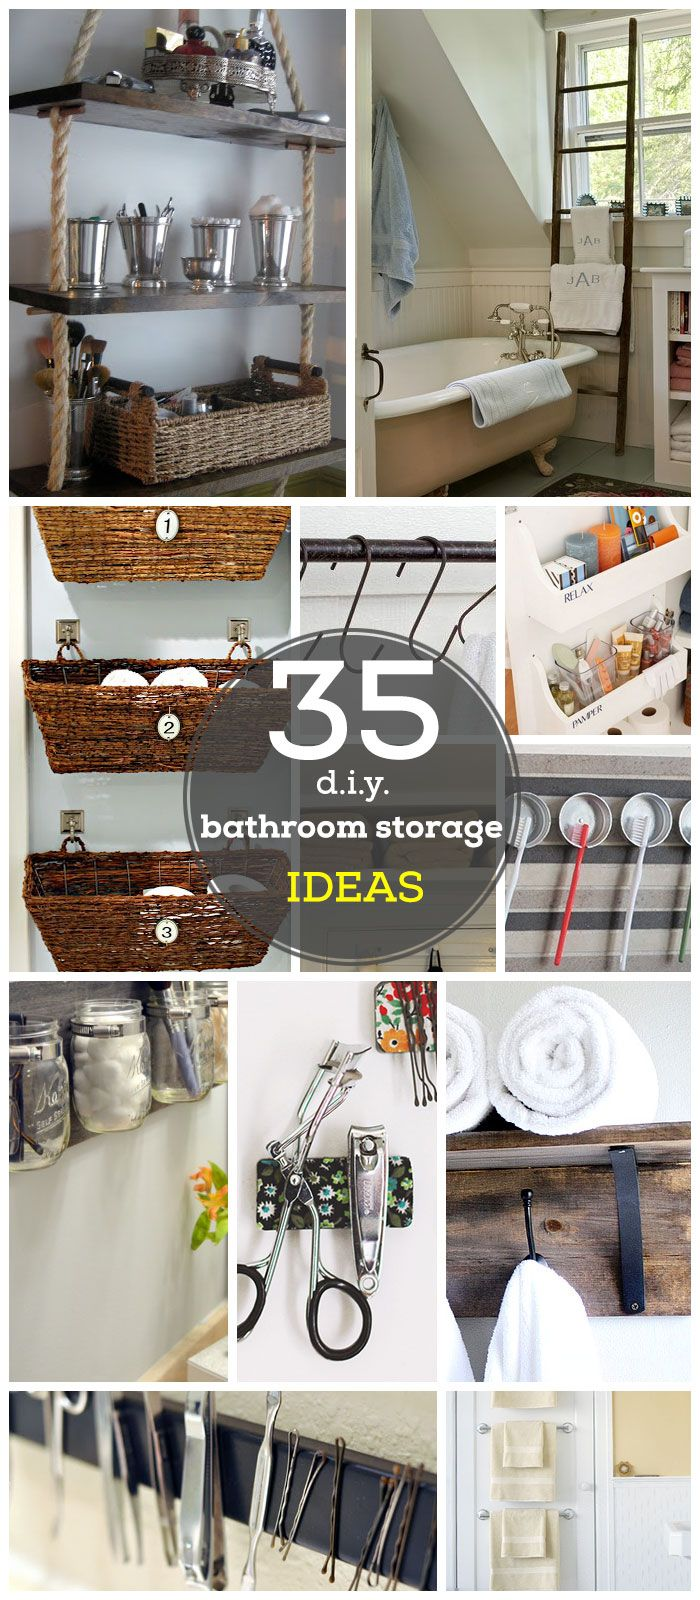 35 DIY Bathroom Storage Ideas To Help You Maximize Your Space